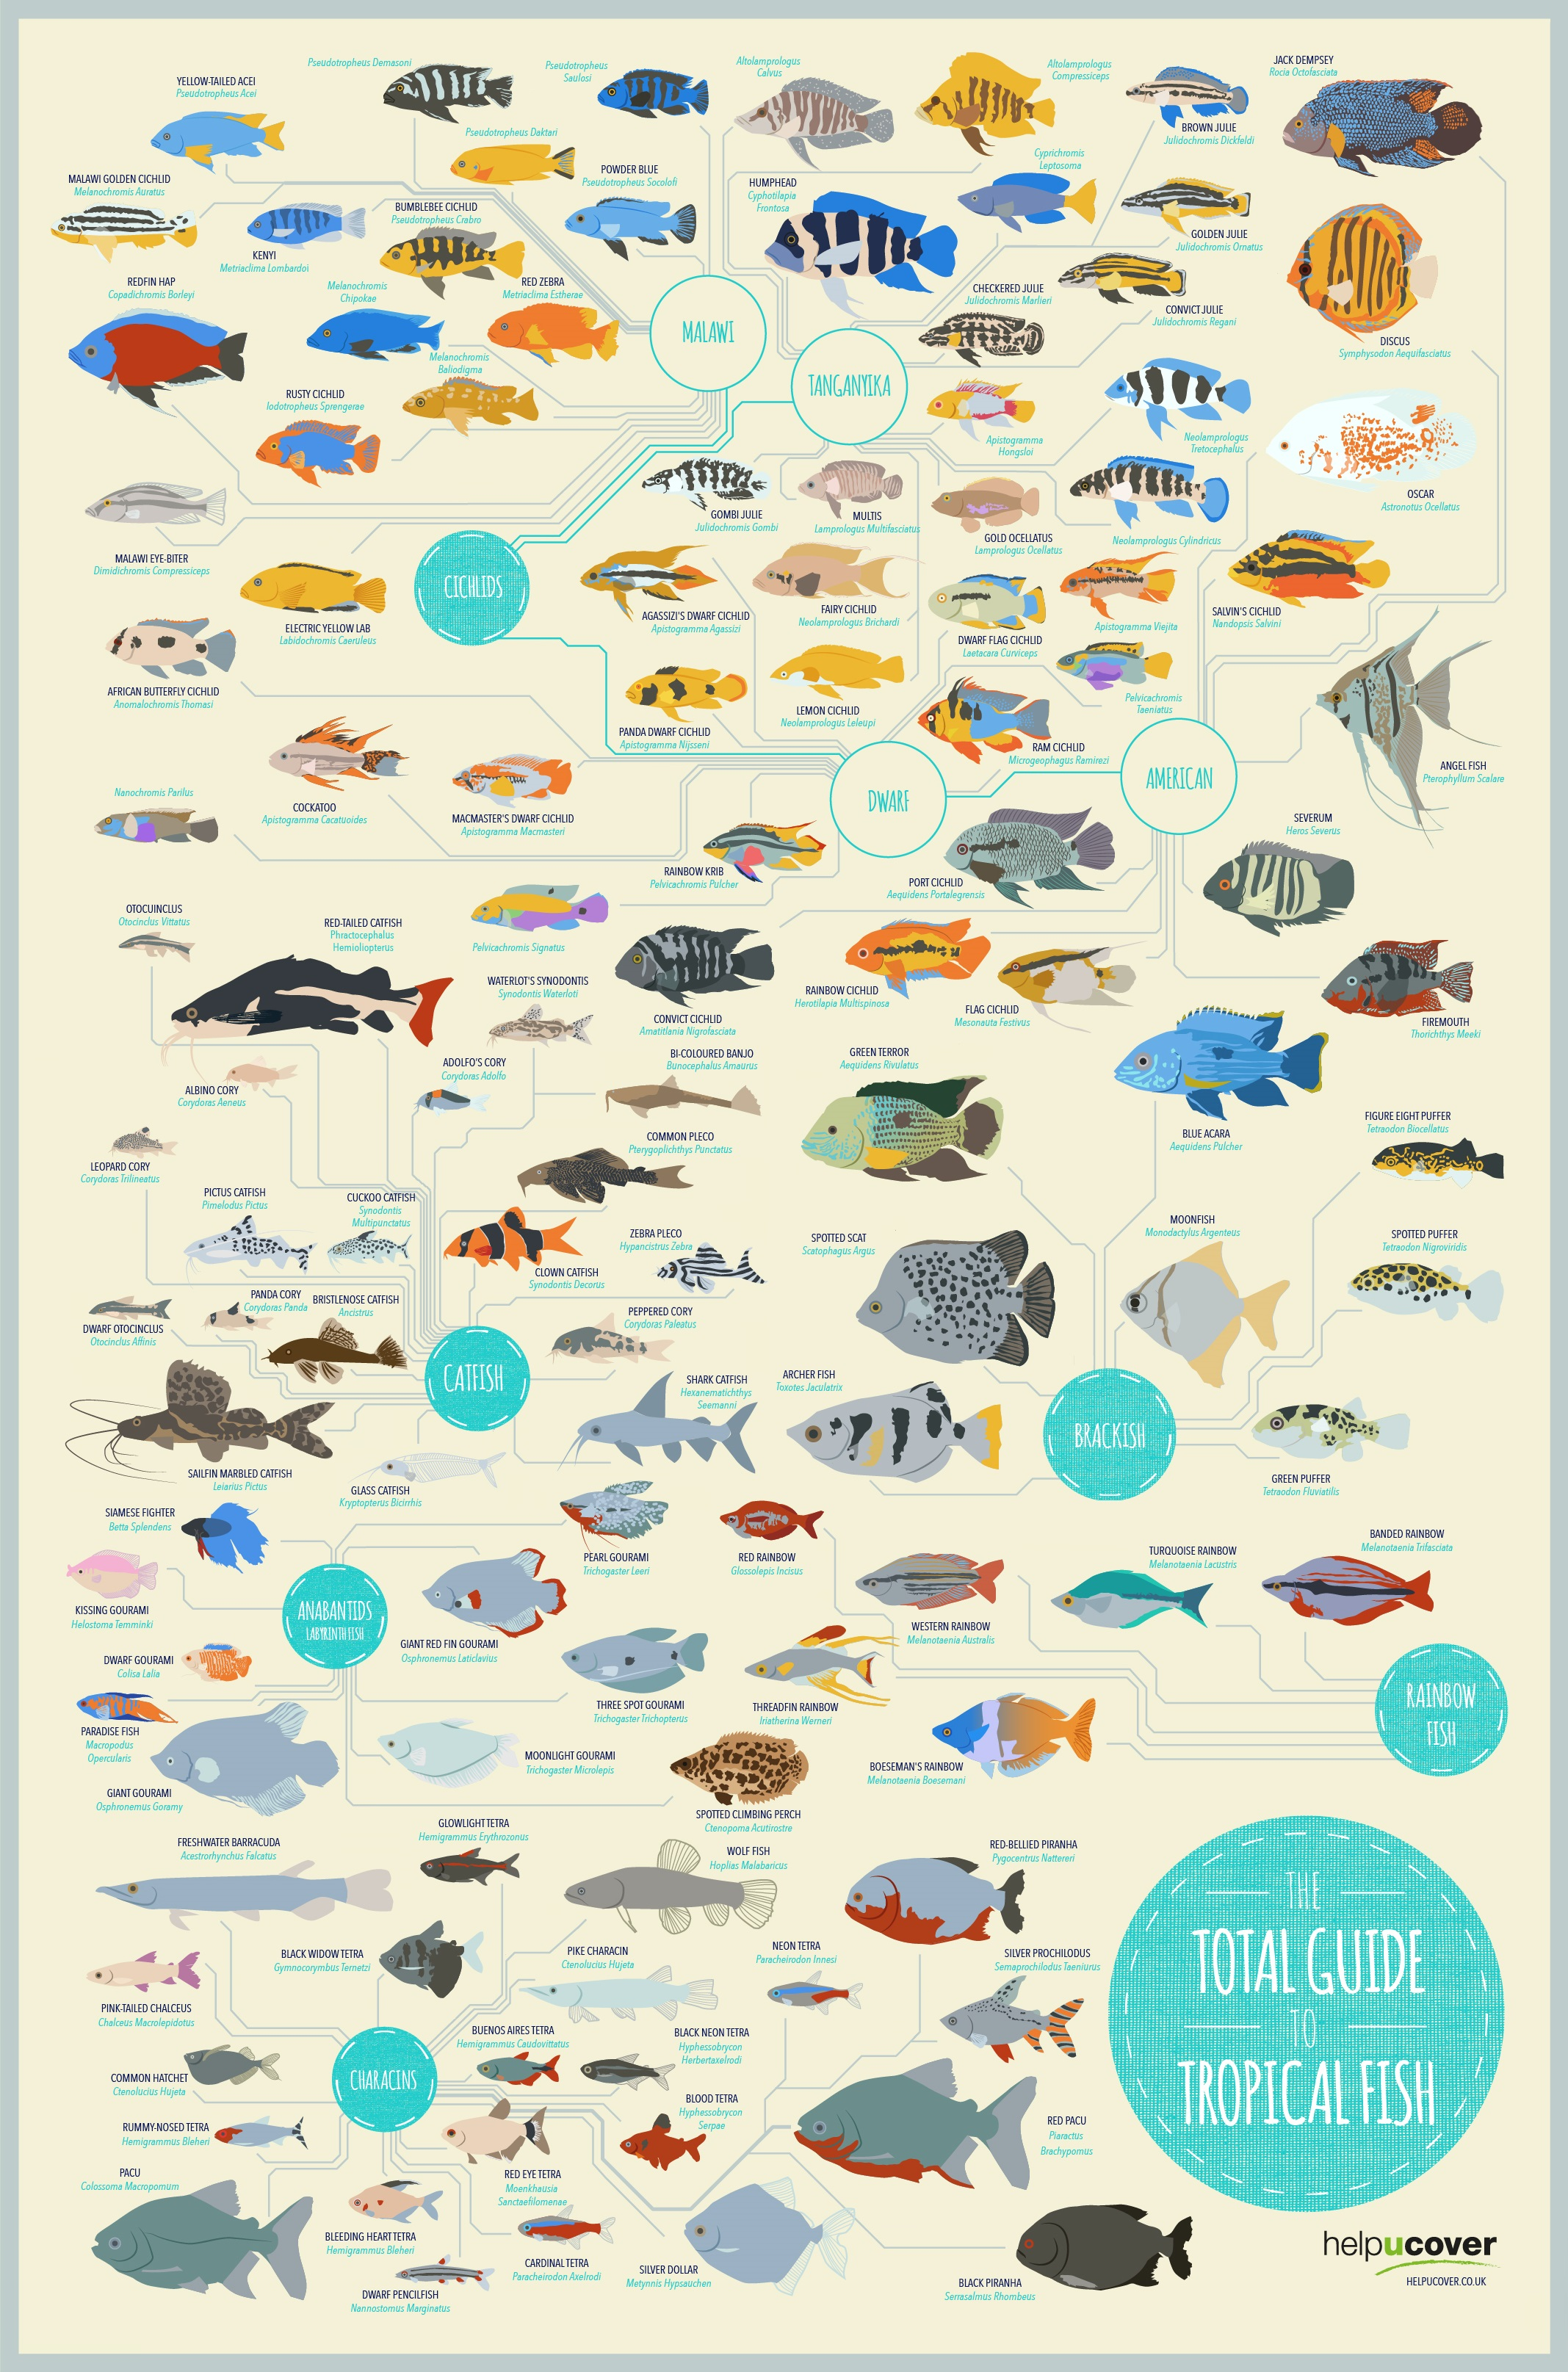 Tropical ocean fish names for Freshwater fish guide